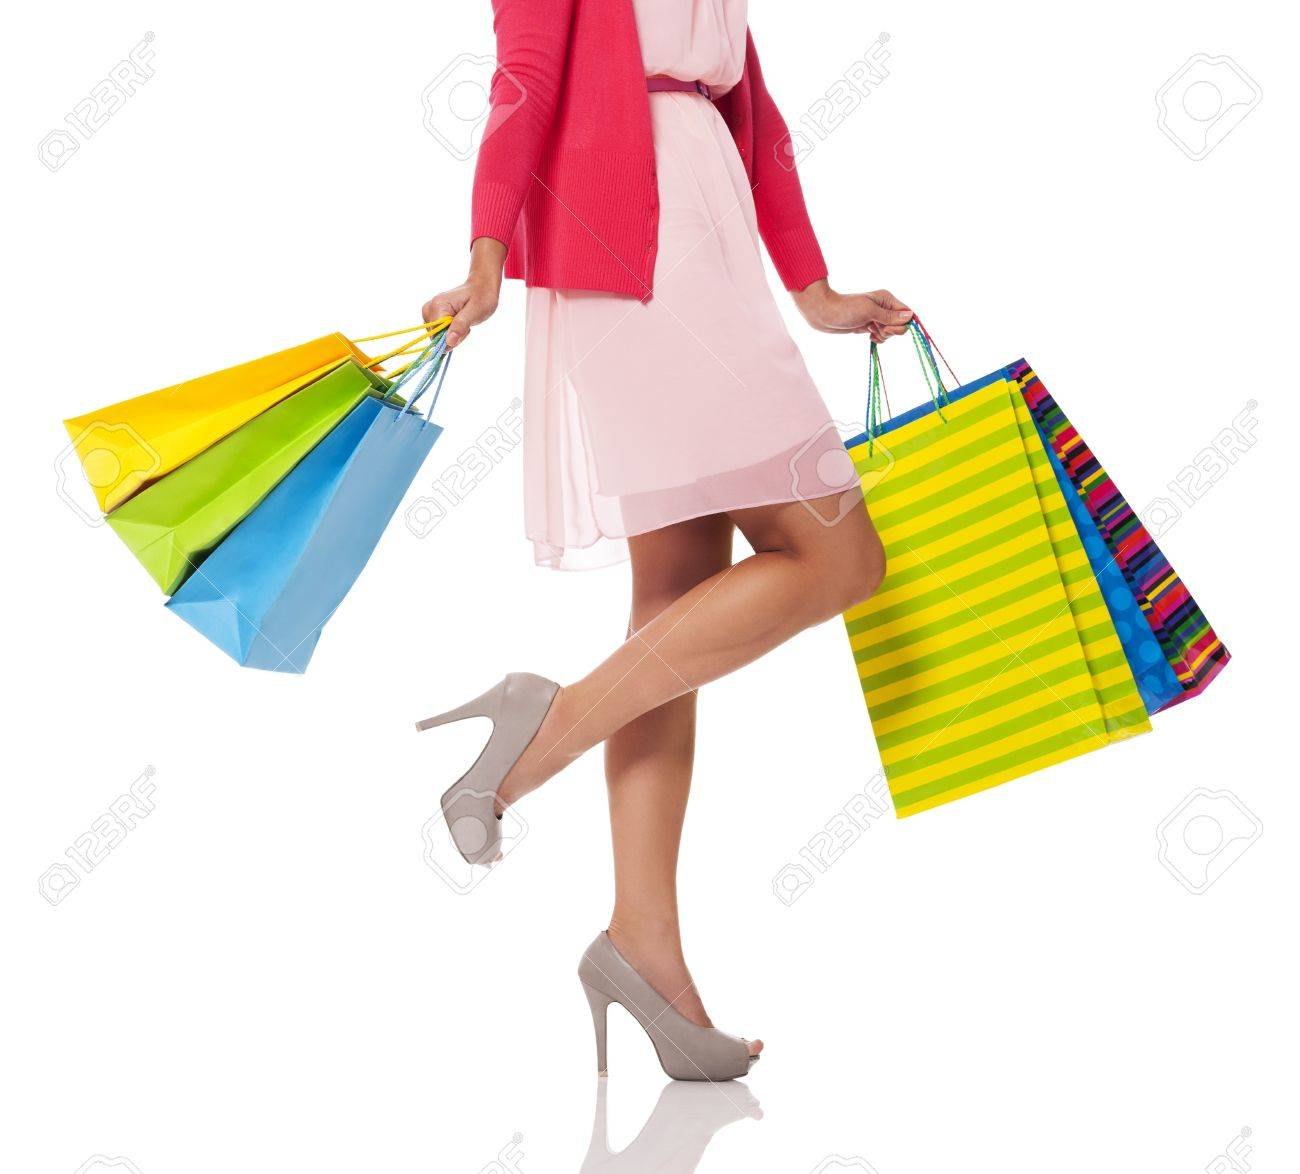 Woman holding colorful shopping bags Stock Photo - 21534445